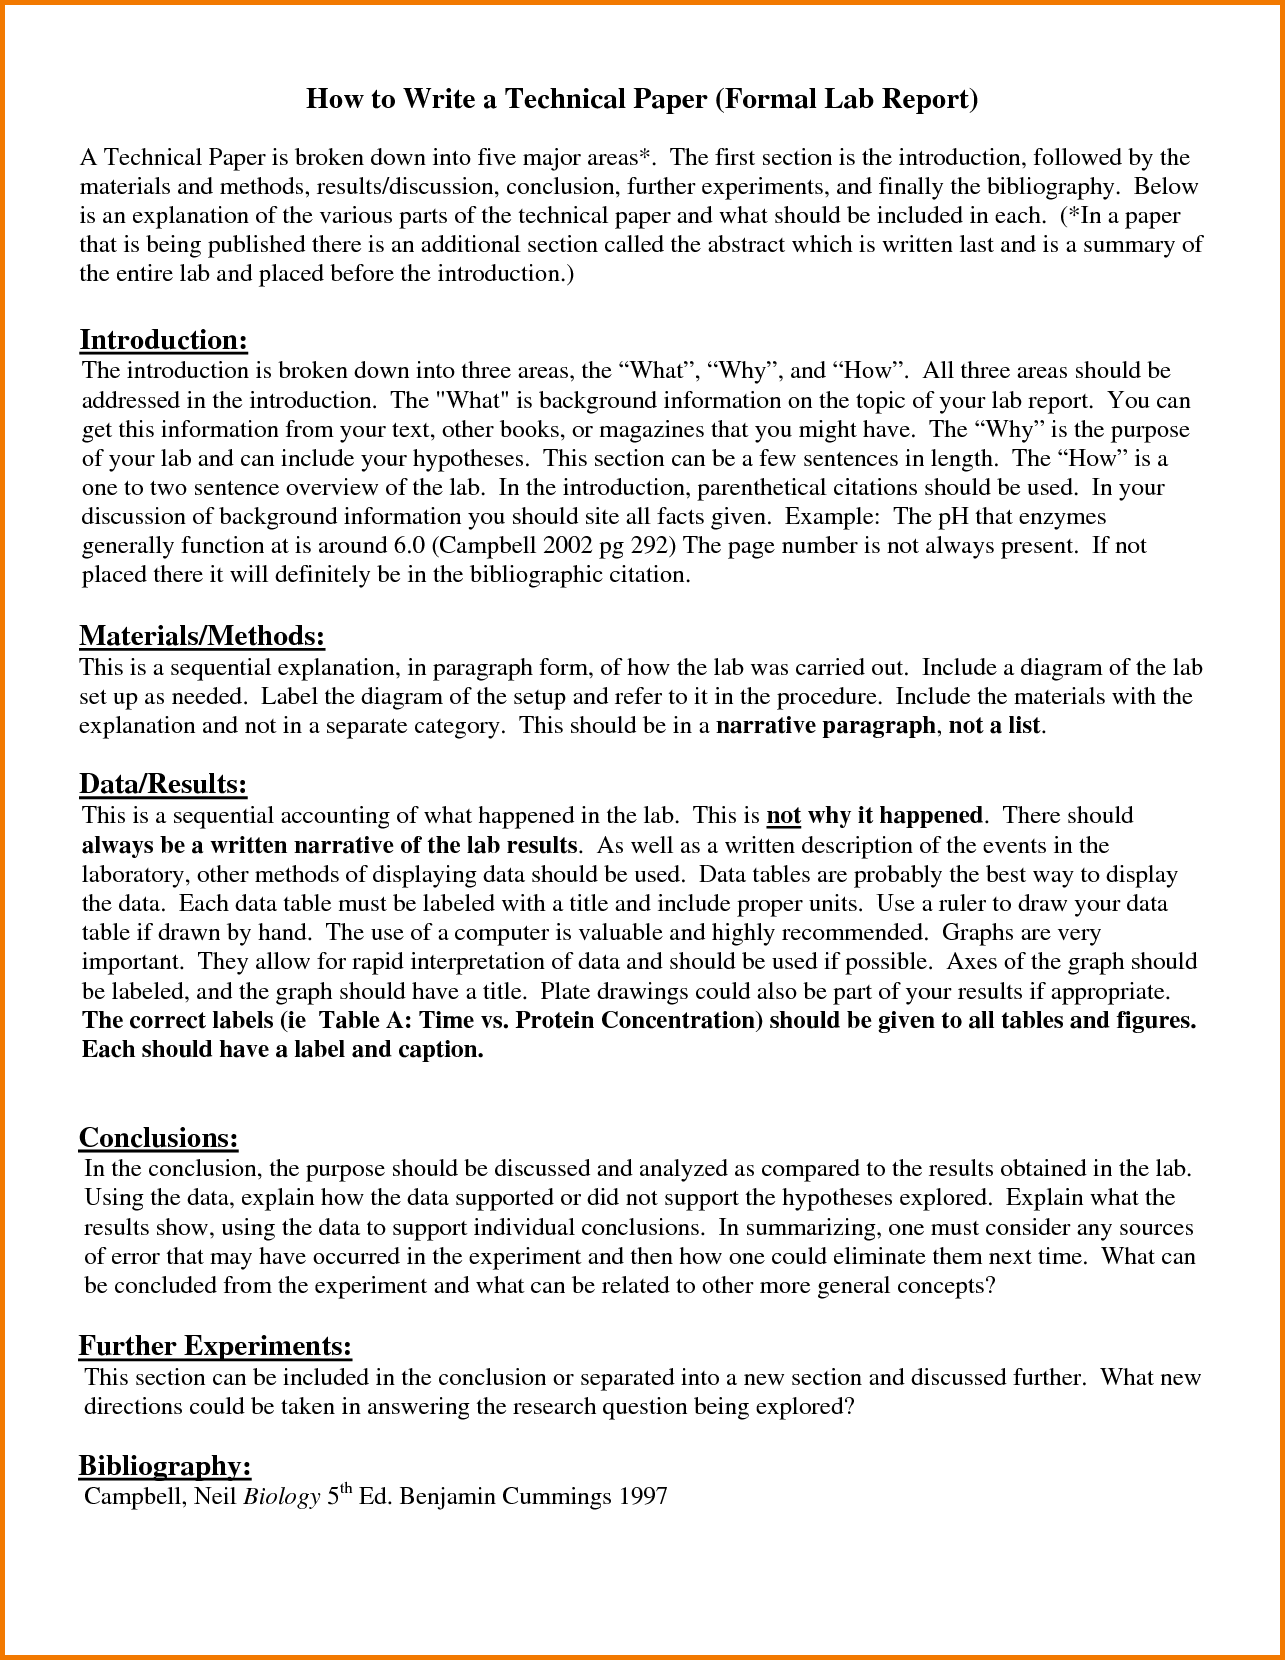 custom personal statement writing site for masters